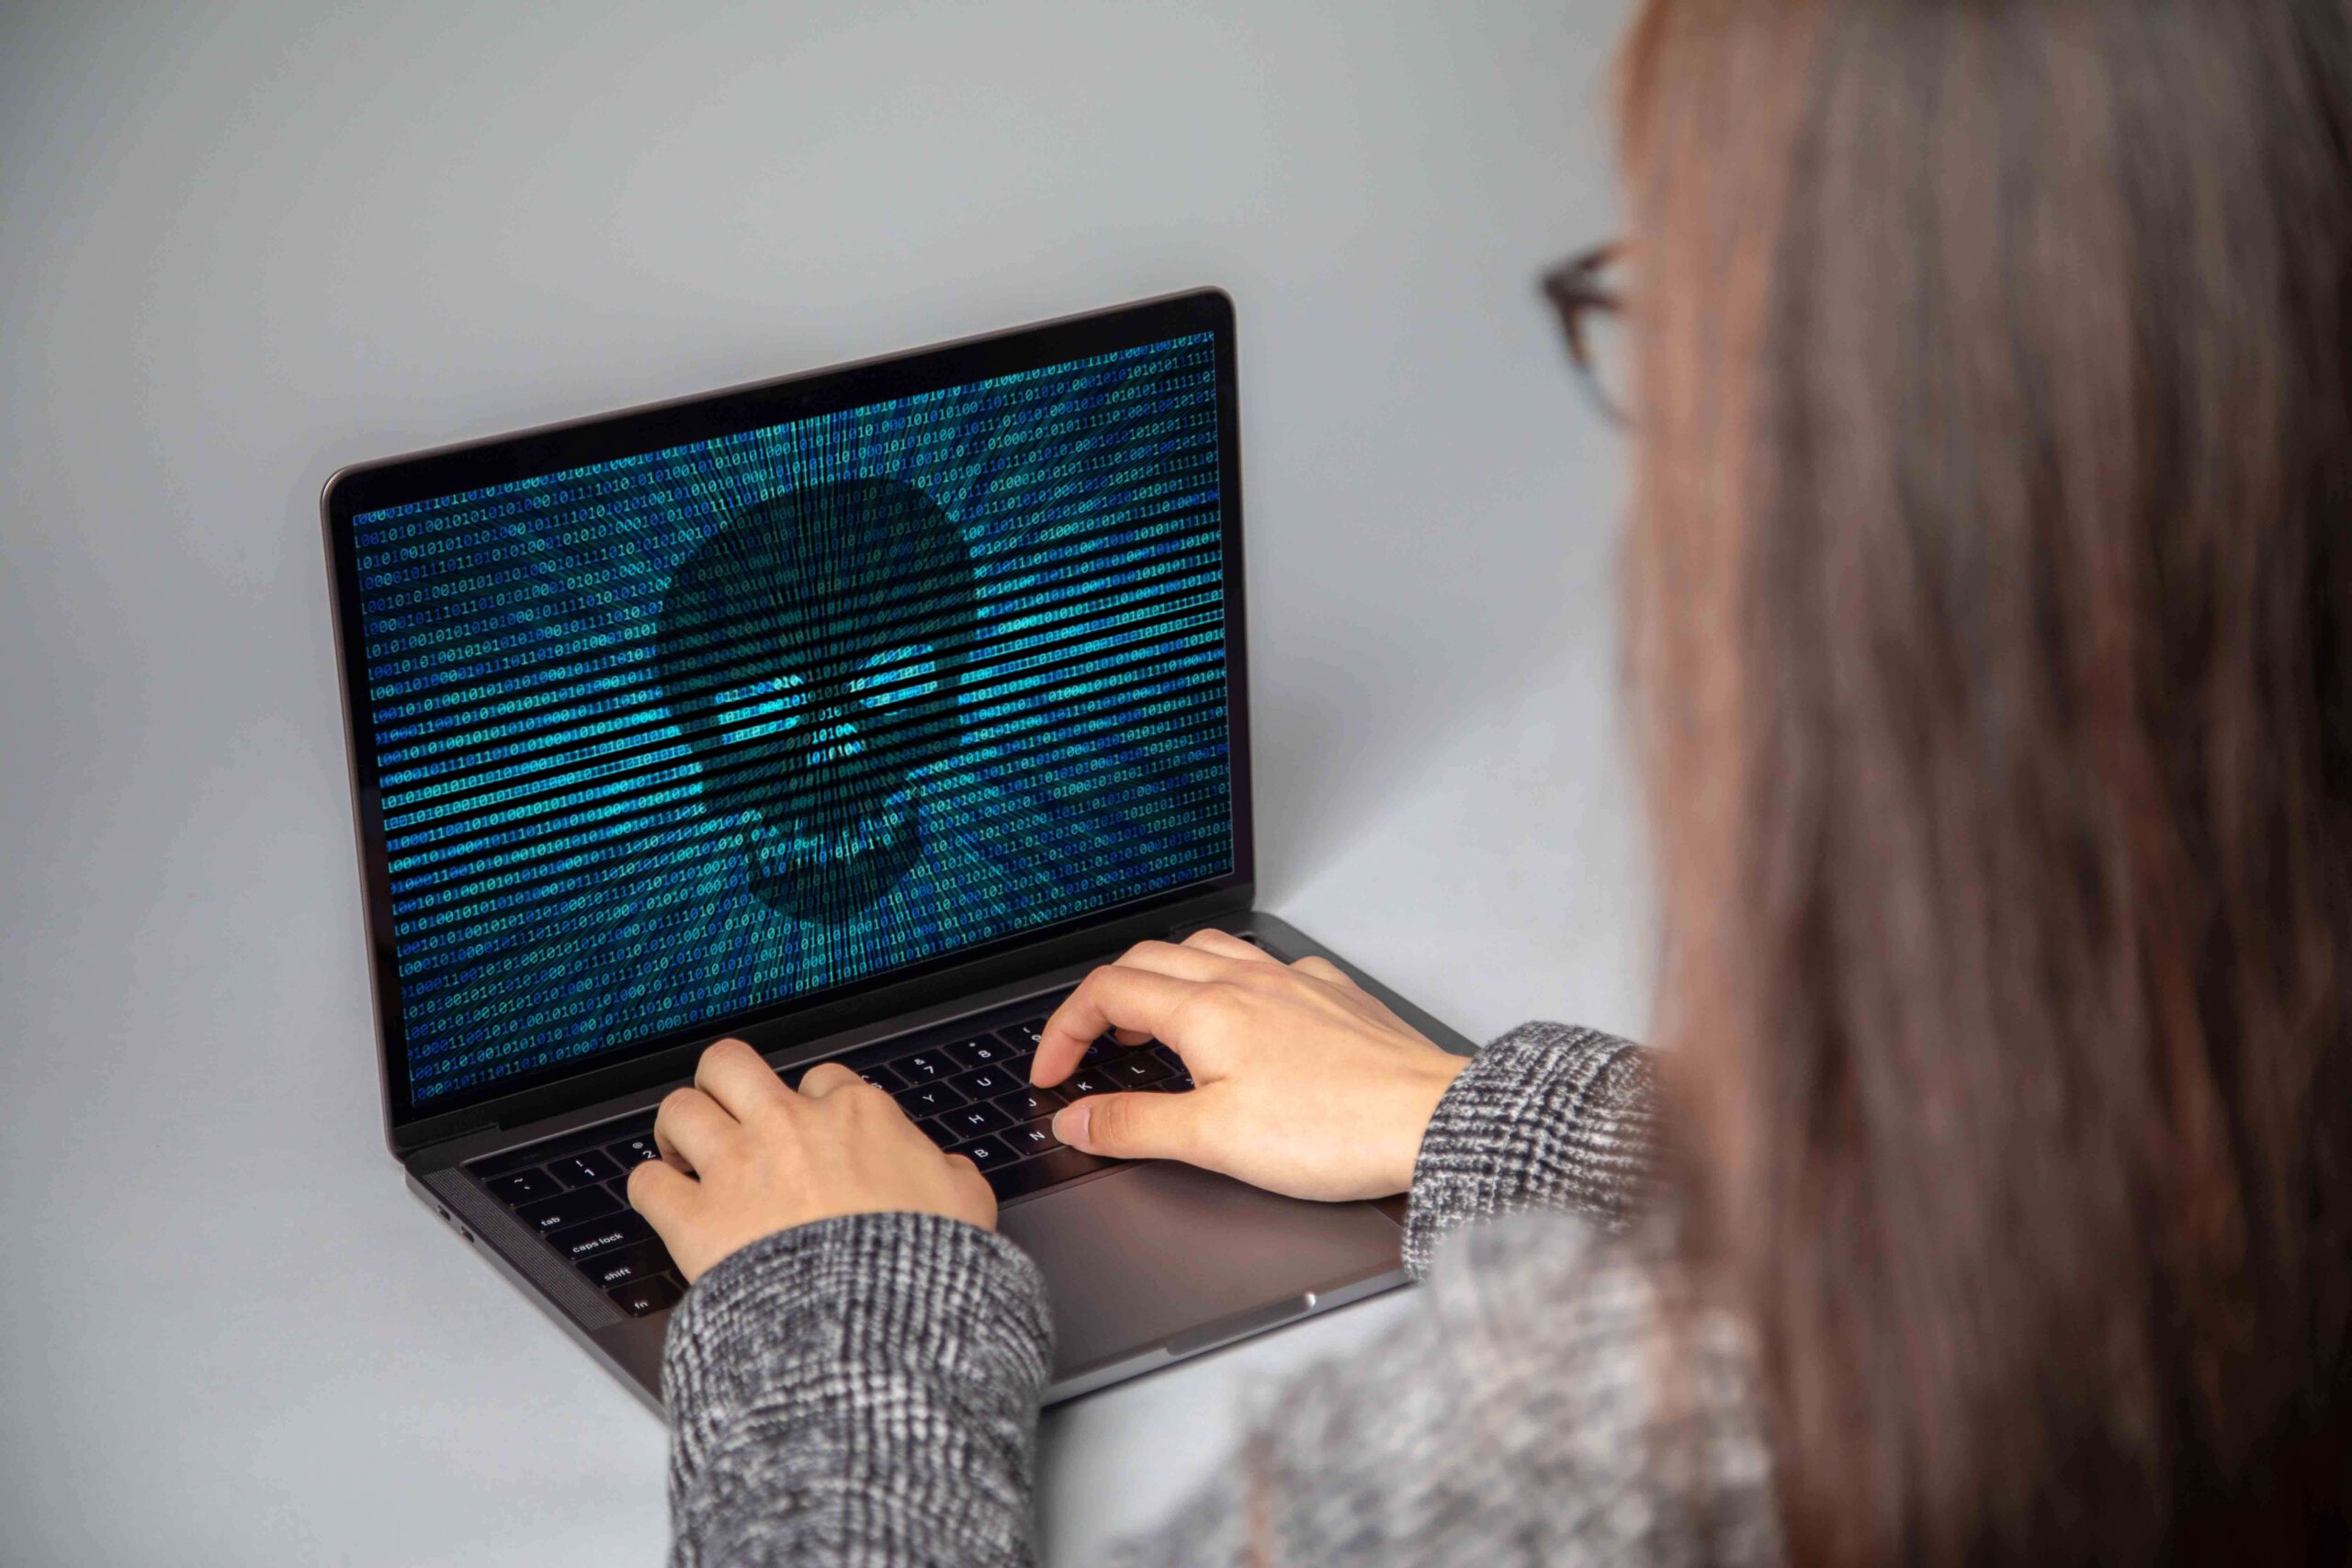 Woman using computer with security alert on screen